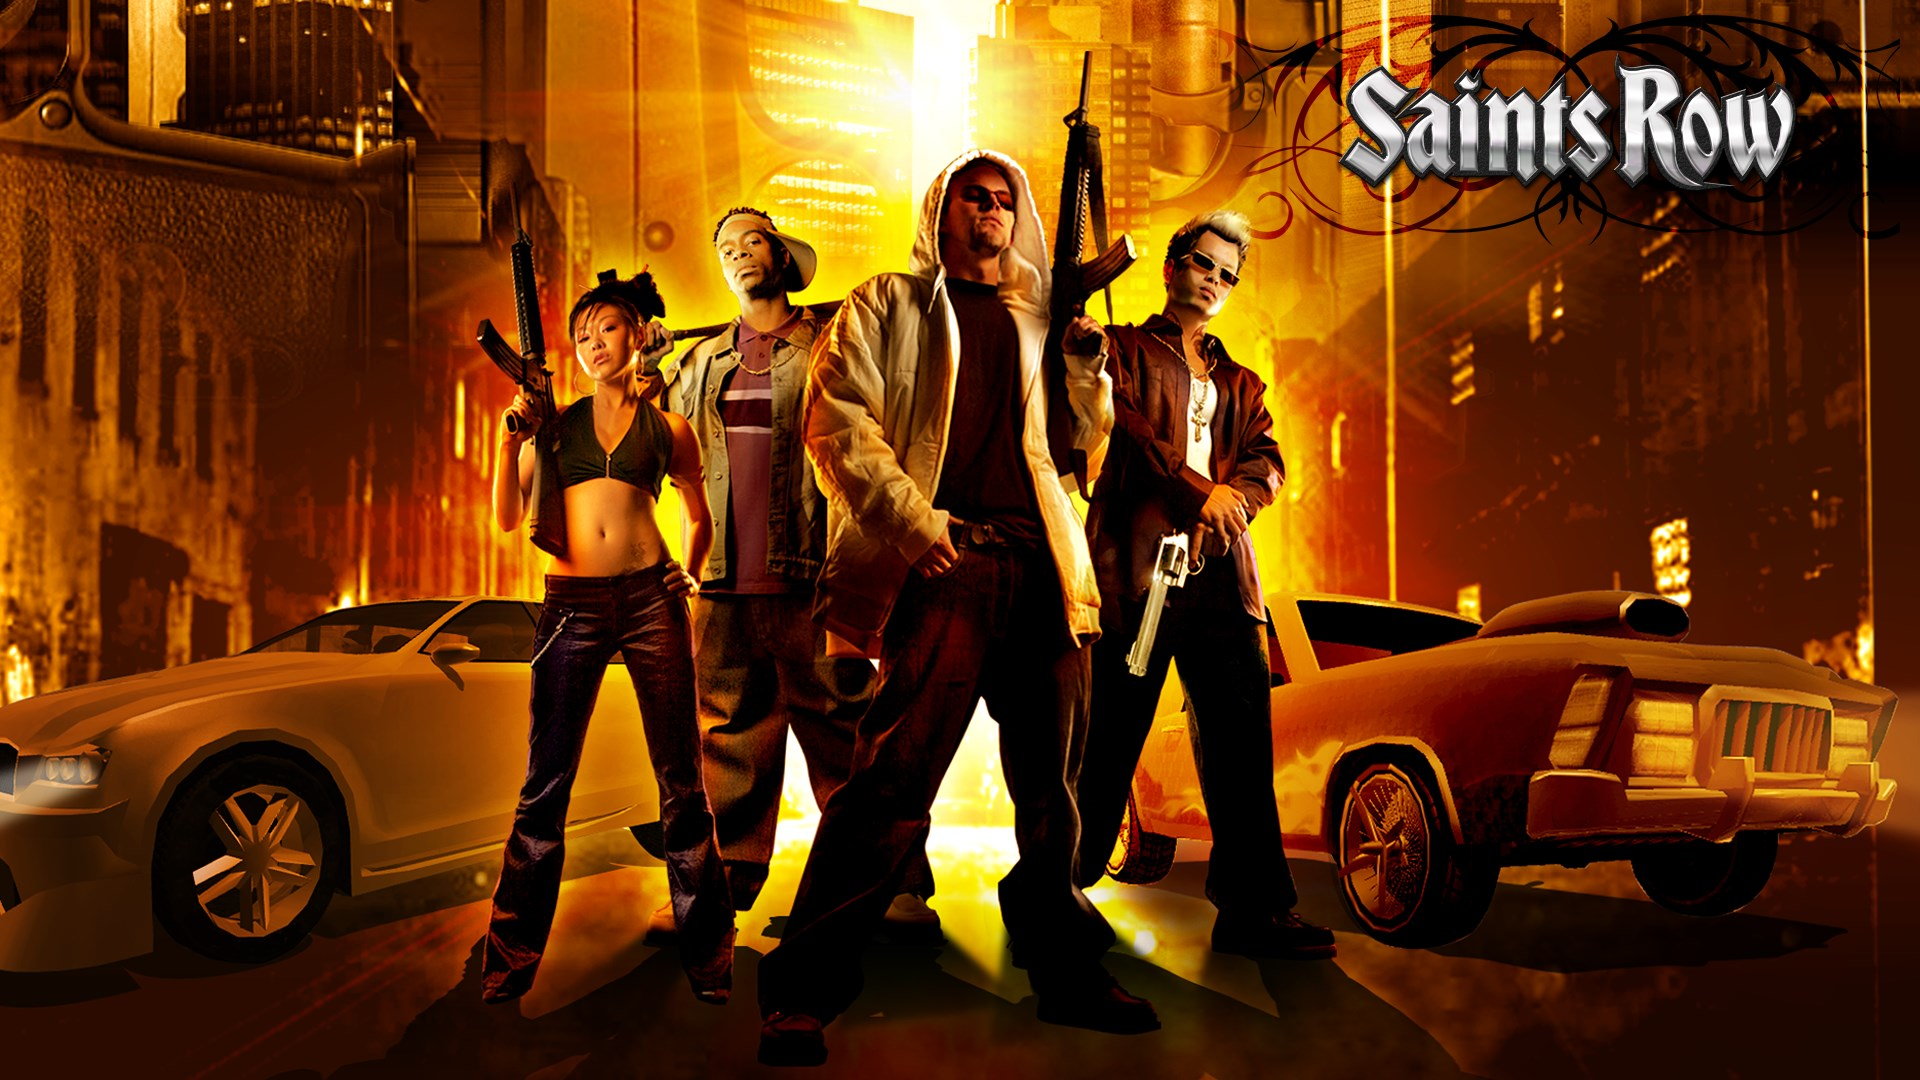 Buy Industrial Map Pack - Microsoft Store on saints row 5 map, the sims 1 map, assassin's creed 1 map, saints row map only, dark souls 1 map, guild wars 1 map, driver 1 map, gta 4 map, gta 1 map, dragon quest 1 map, portal 1 map, uncharted 1 map, gta san andreas map, risen 1 map, saints row hell map, saints row iv map, just cause 1 map, skyrim map, saints row cd map, resident evil 1 map,